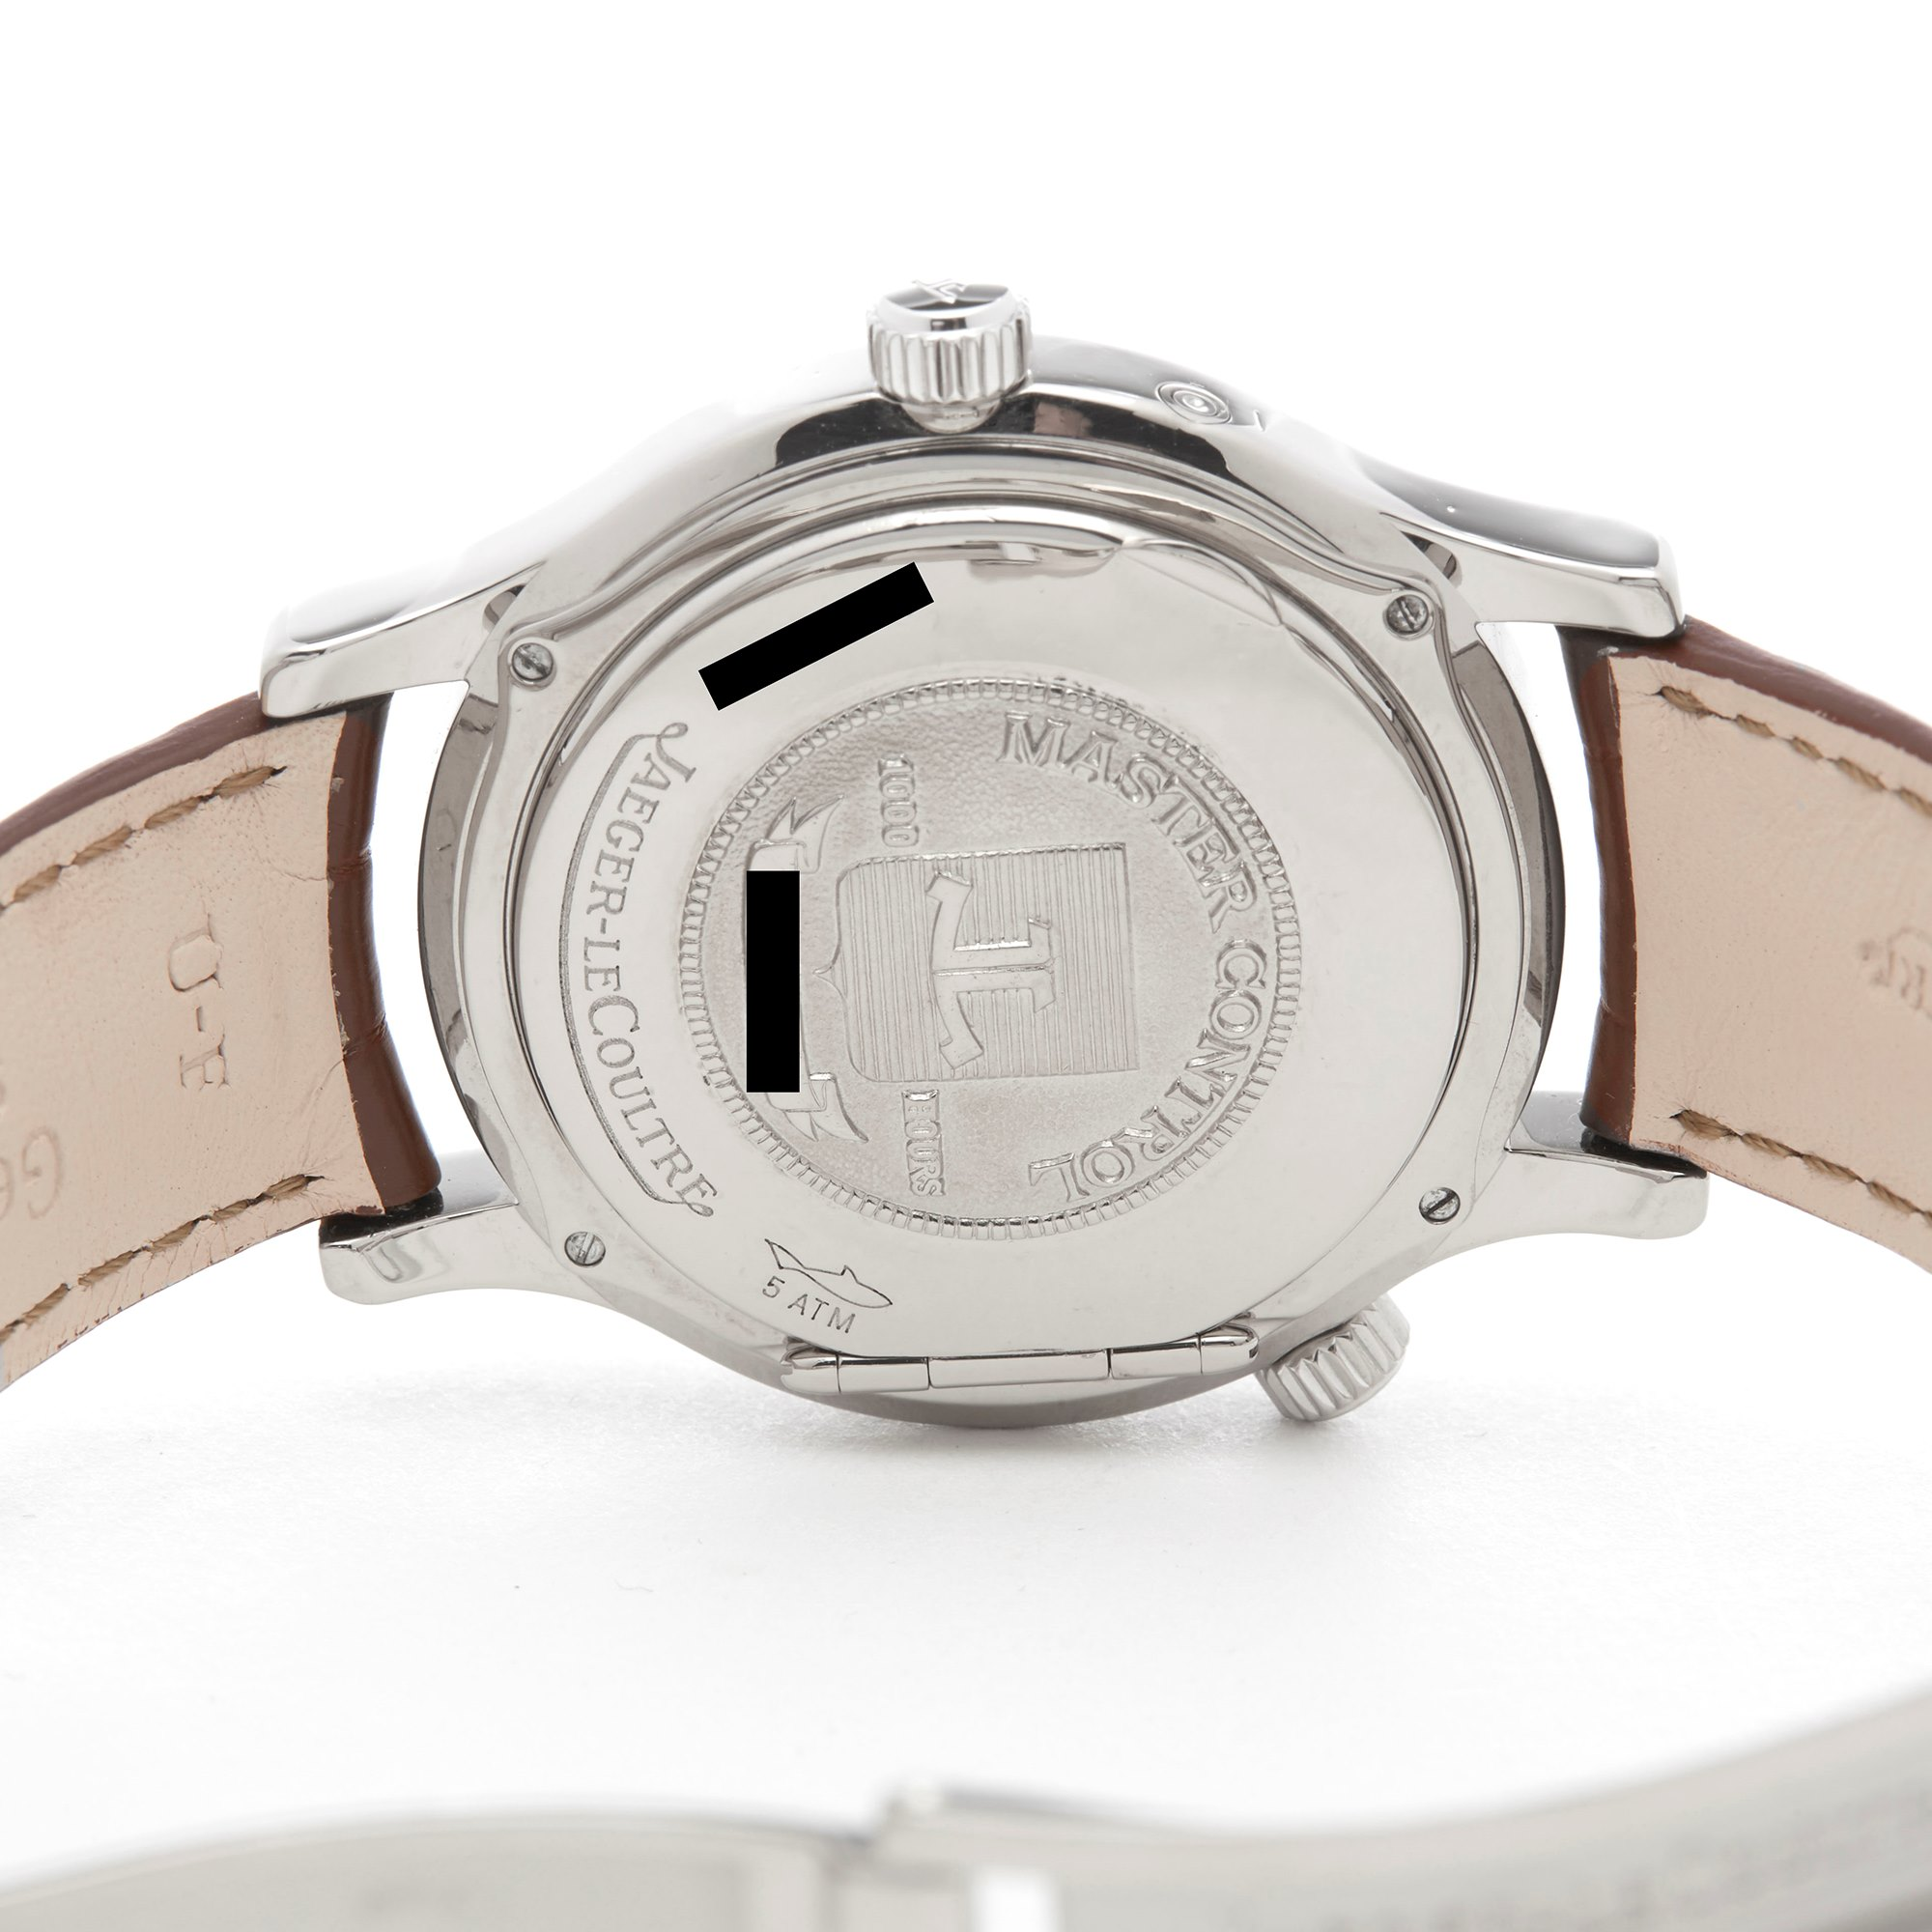 Jaeger-LeCoultre Master Geographic 18k Wit Goud 142.3.92